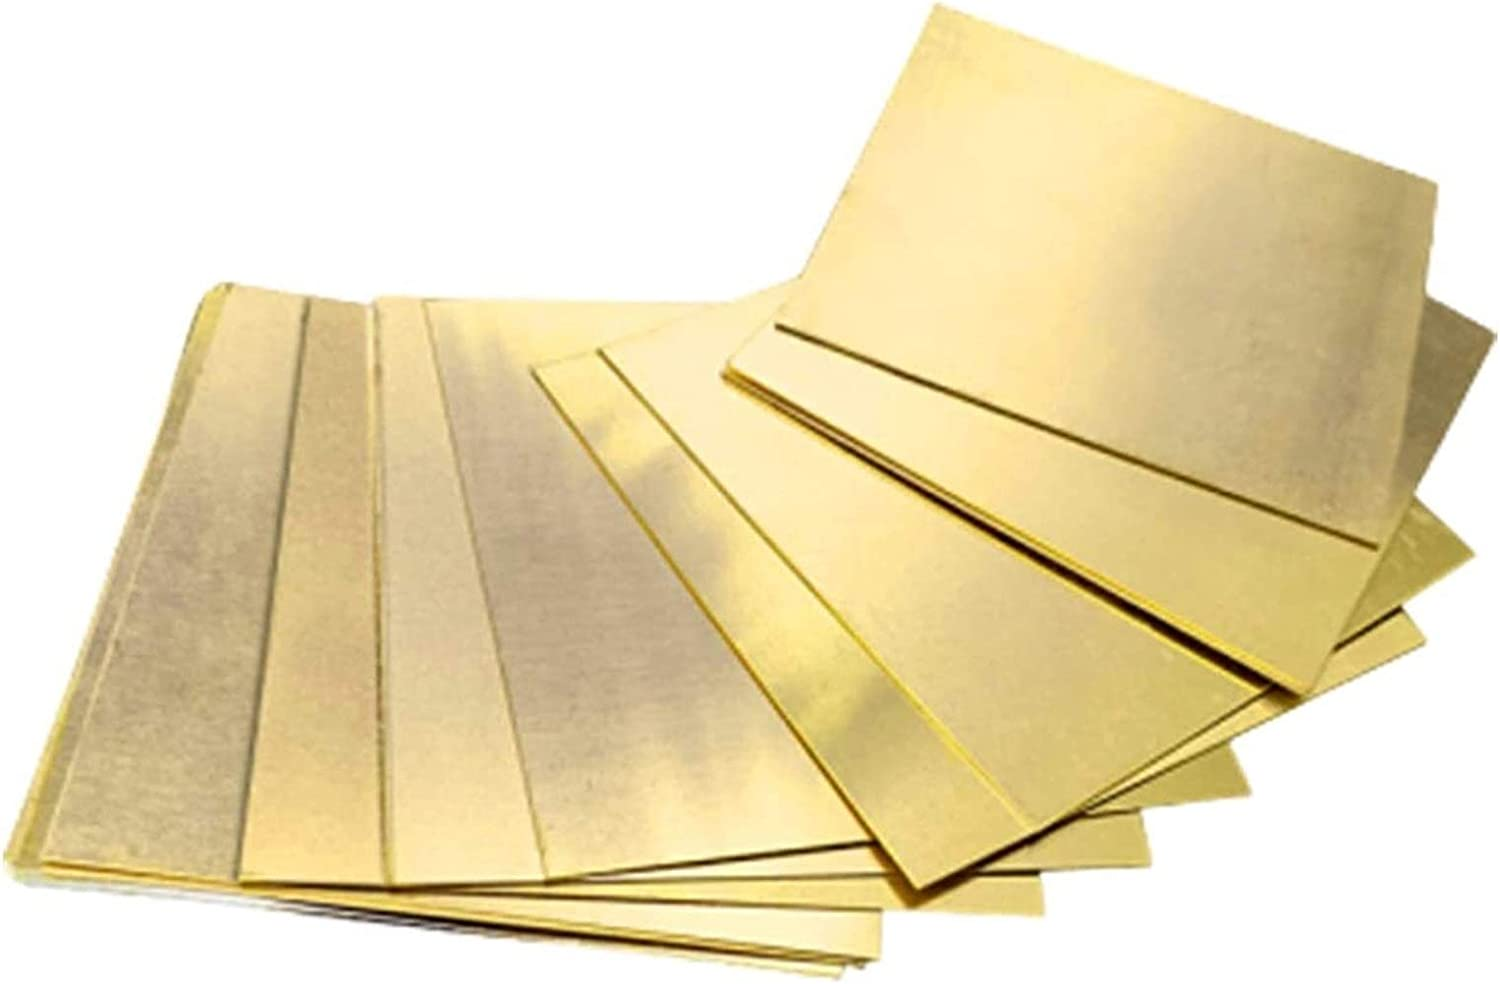 Wzqwzj Copper Sheet In a popularity Metal Brass Applicat for Architectural Ideal Max 63% OFF